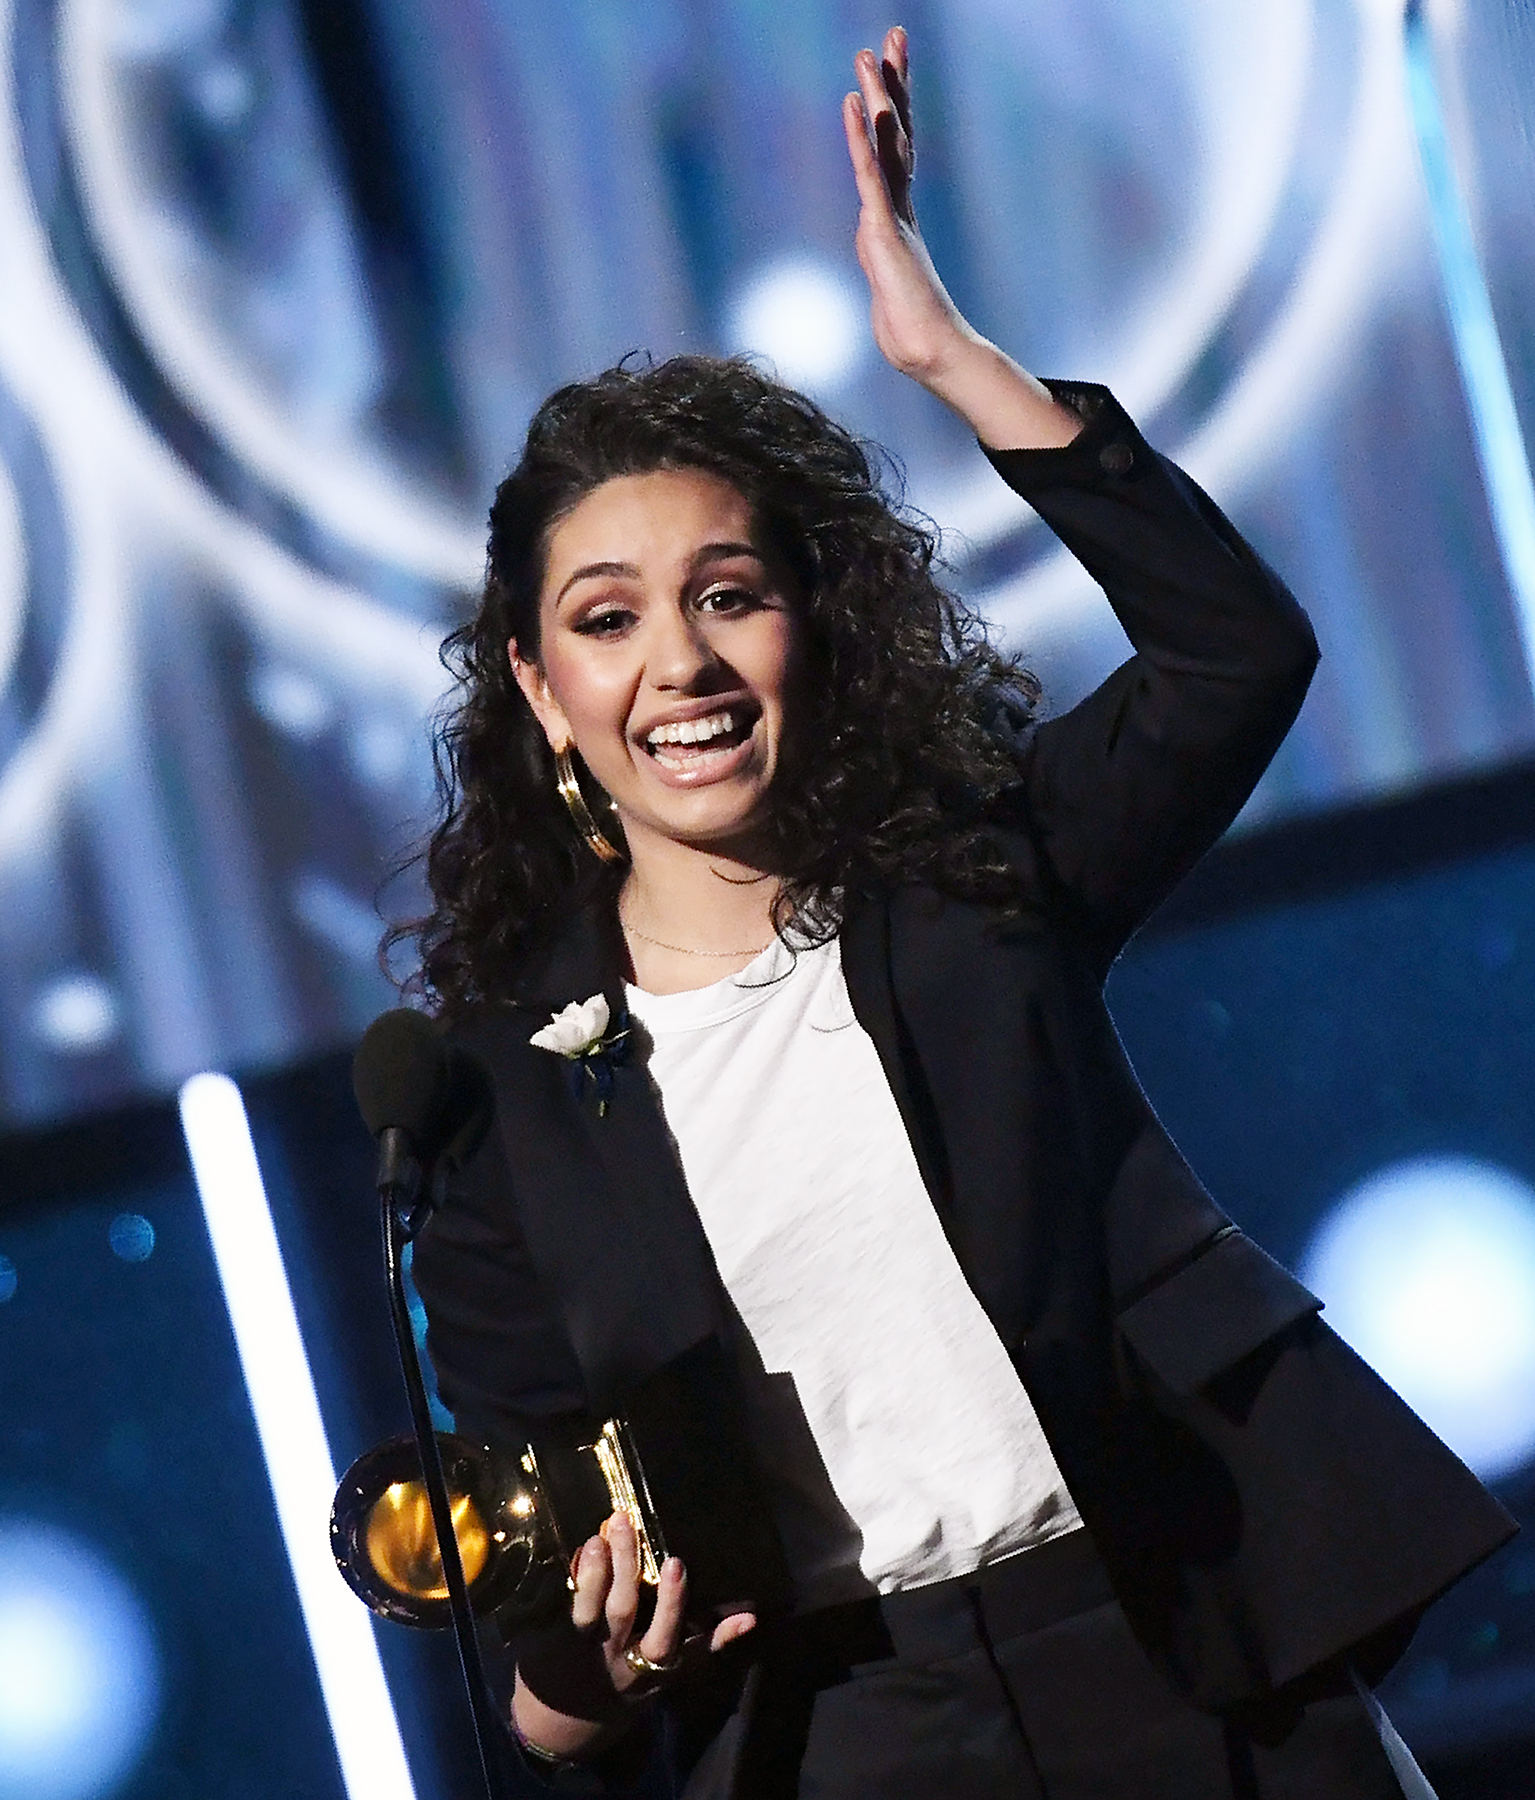 Alessia Cara Grammys 2018 Best New Artist winner